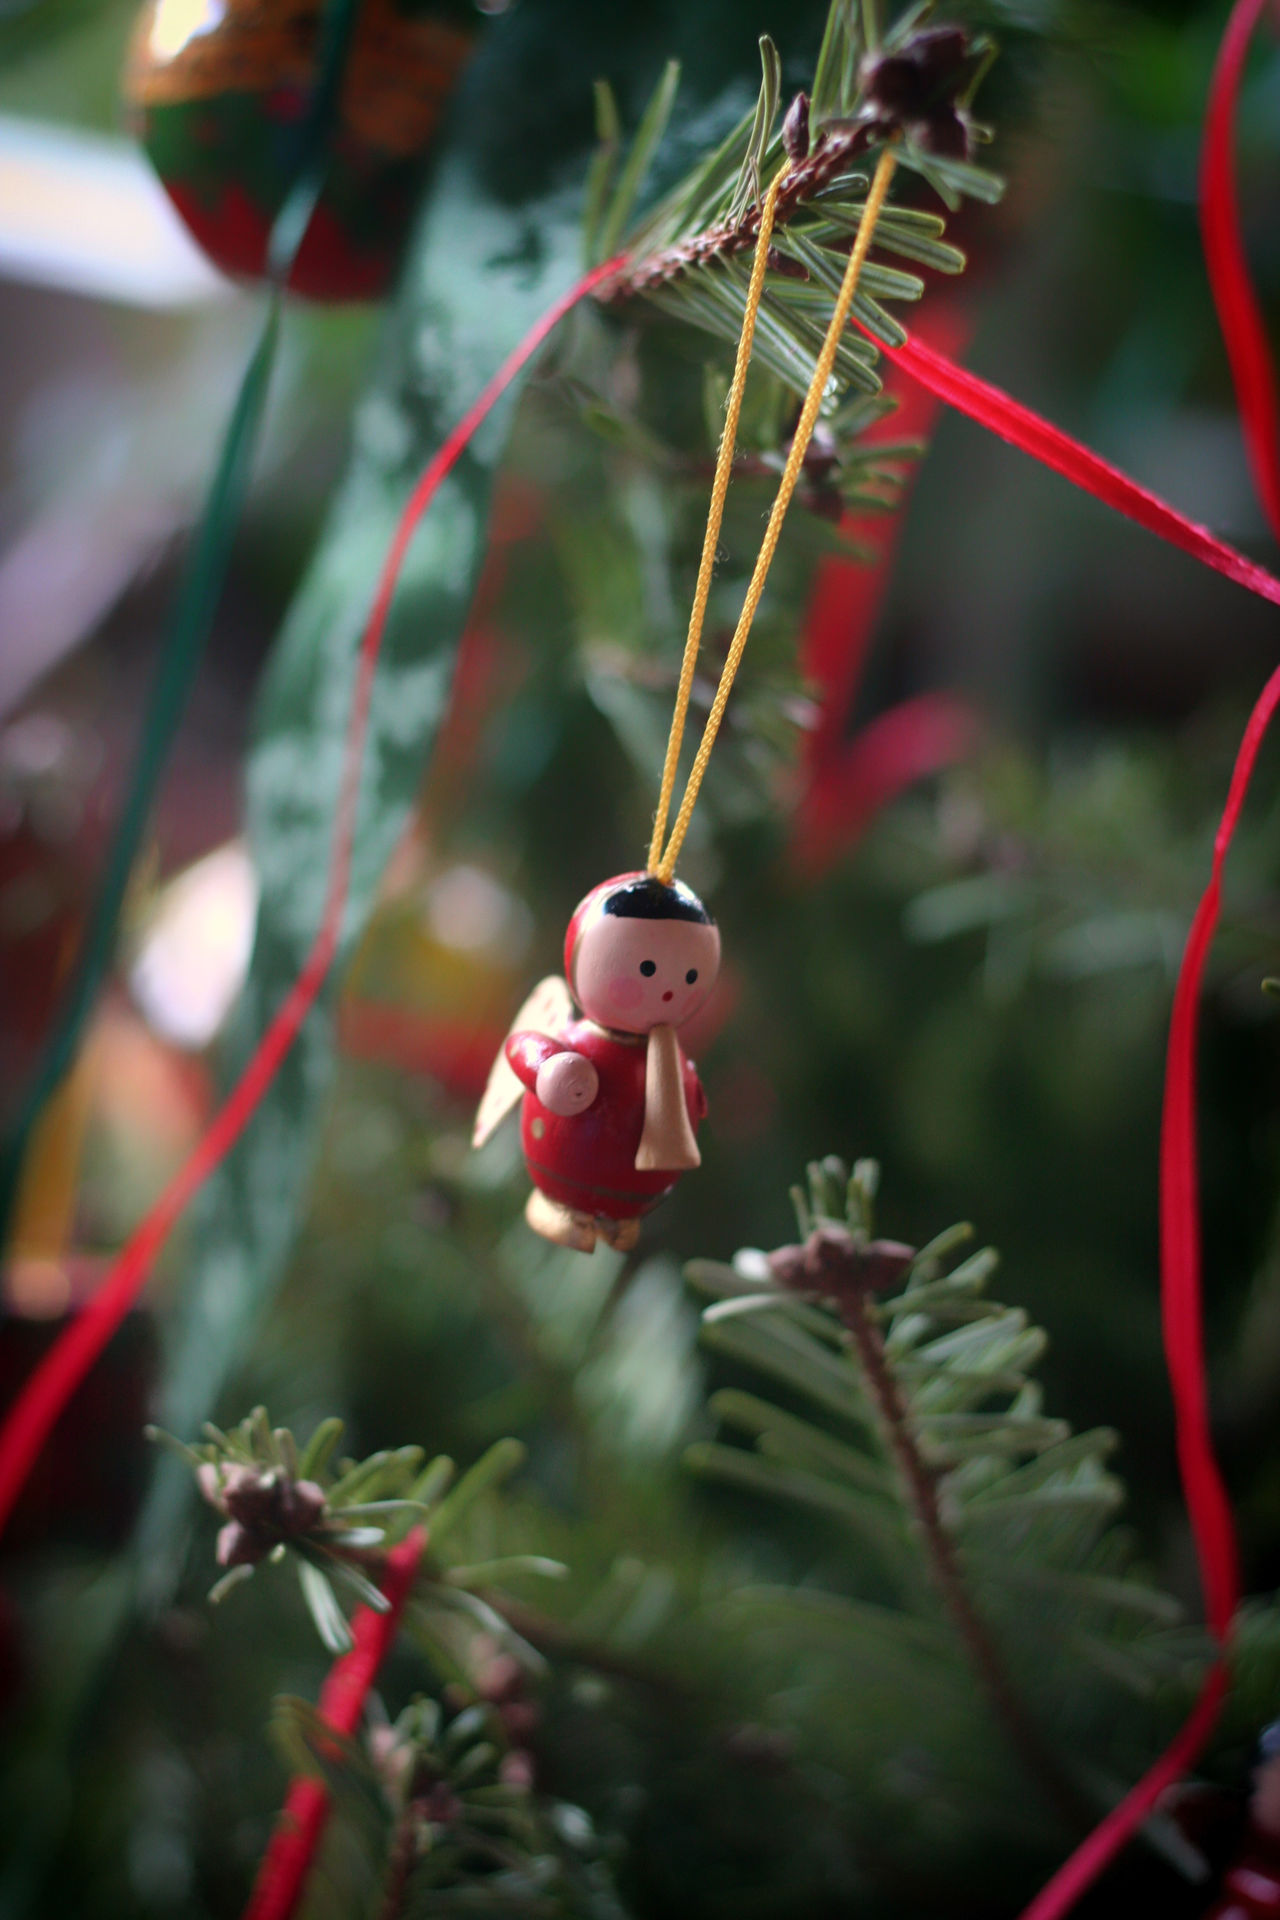 Angel Chrismas Time Chrismastime Christmas Christmas Decoration Close-up Day Details Focus On Foreground Growth Insect Nature No People Outdoors Plant